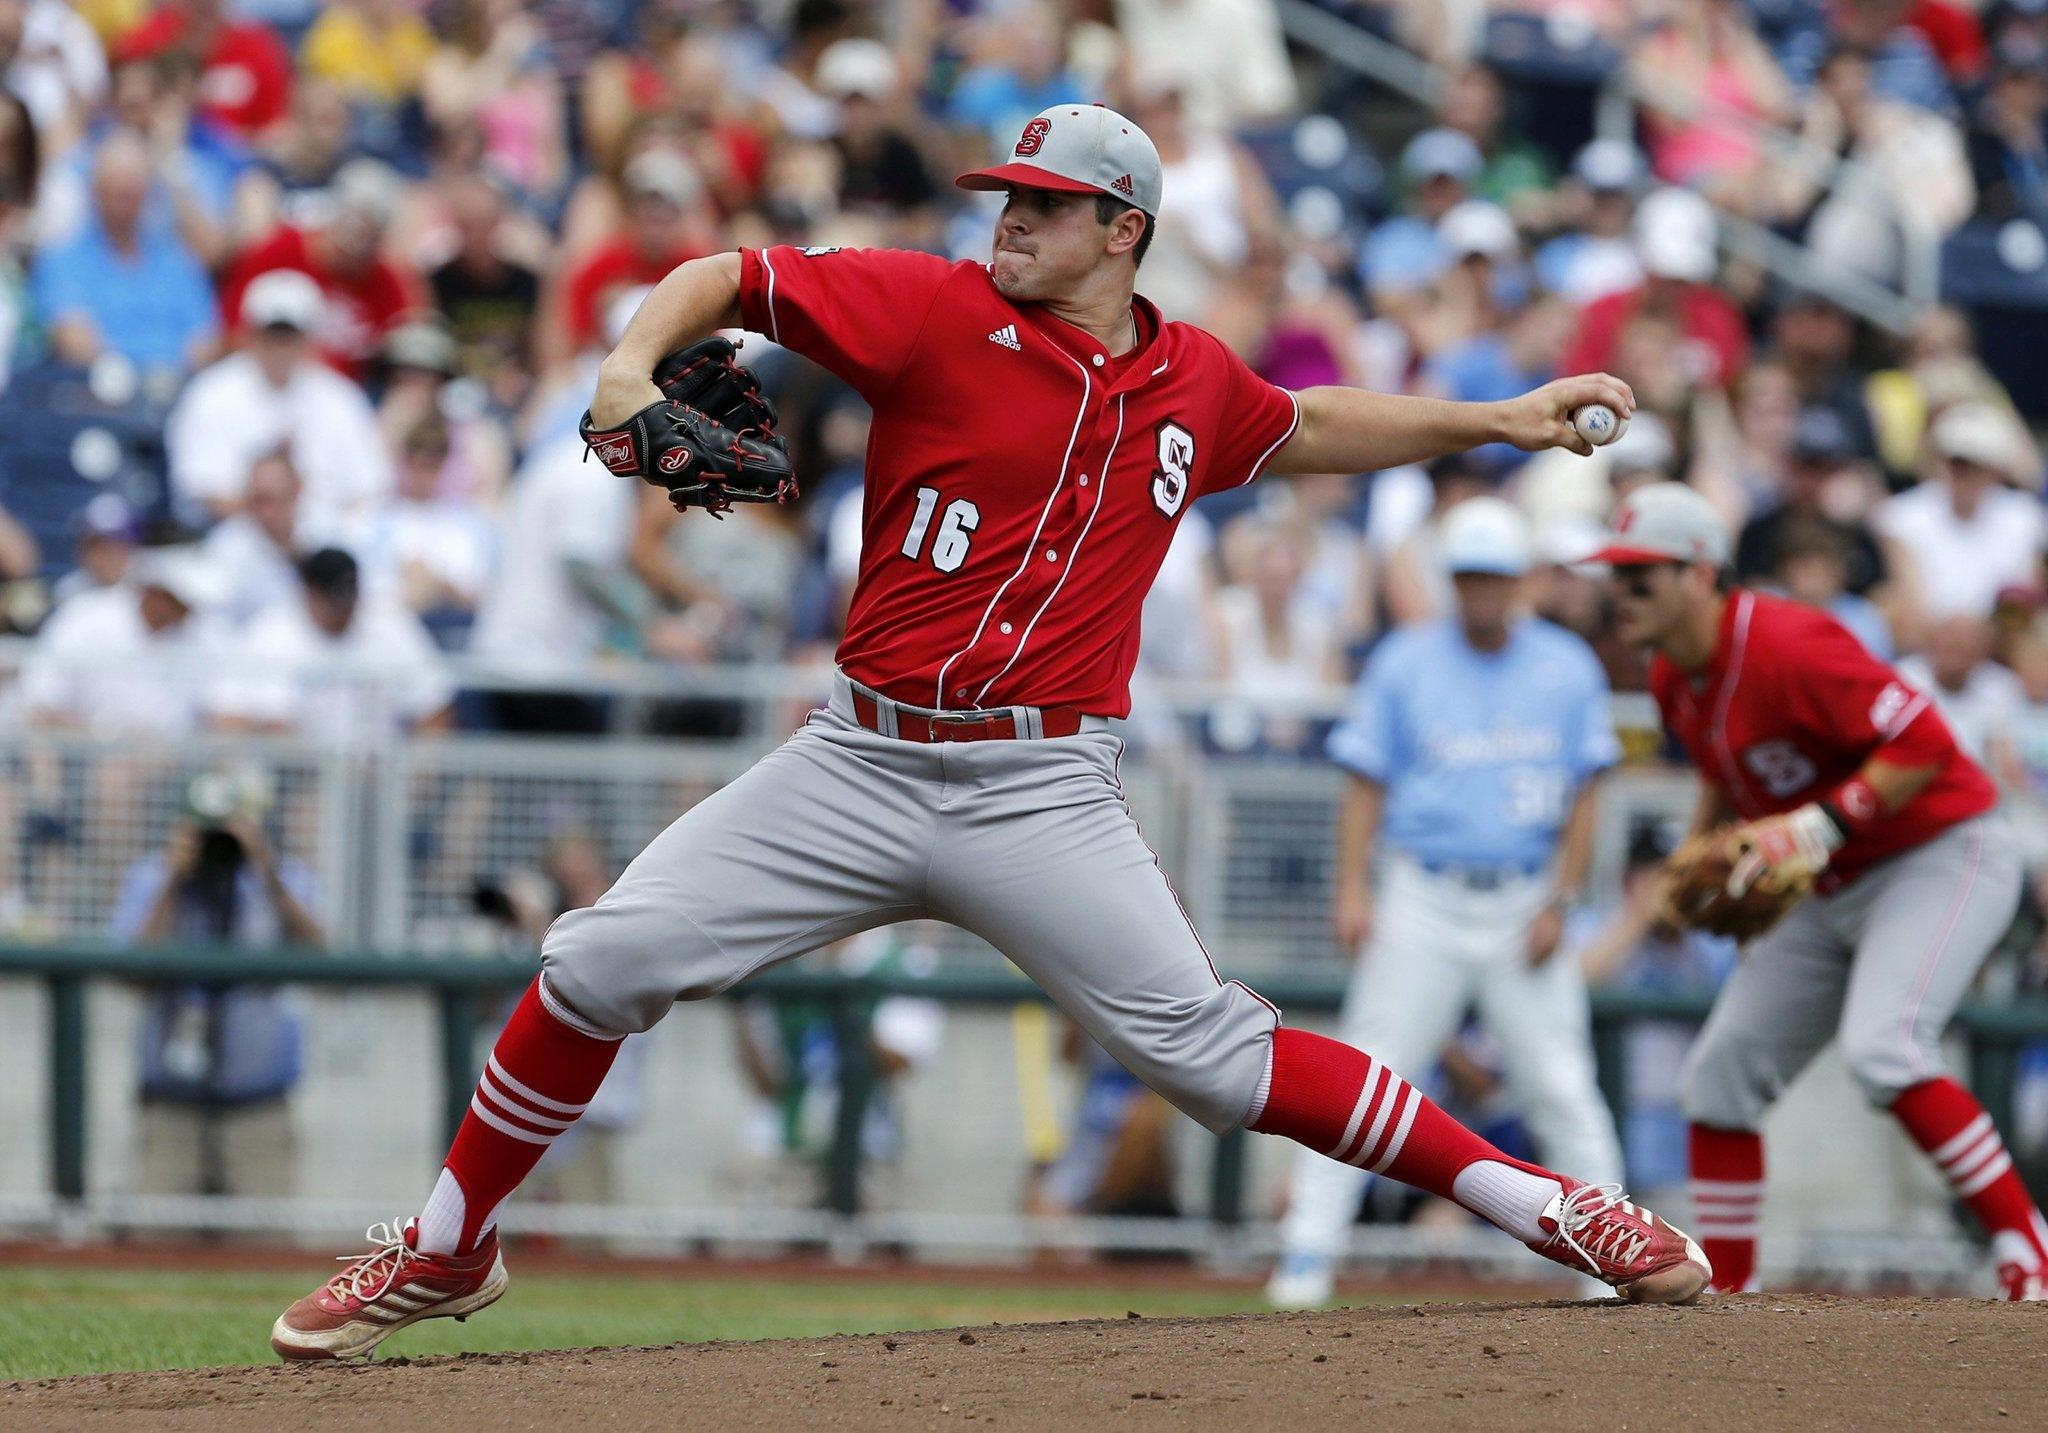 N.C. State's Carlos Rodon (16) pitches during the 2013 College World Series.